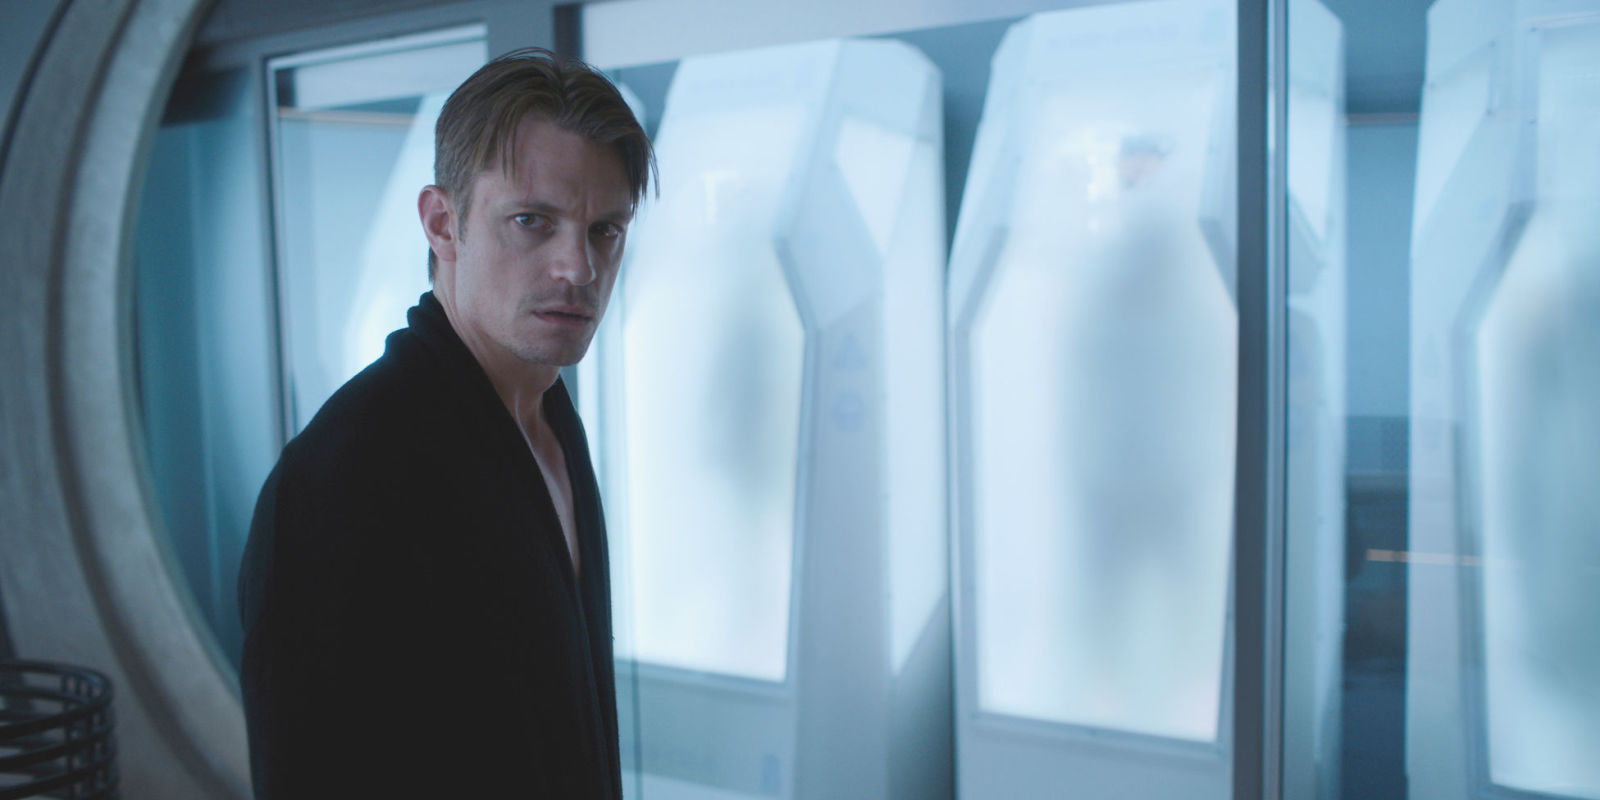 Altered Carbon author rules out a Kovacs prequel, but is open to writing more books